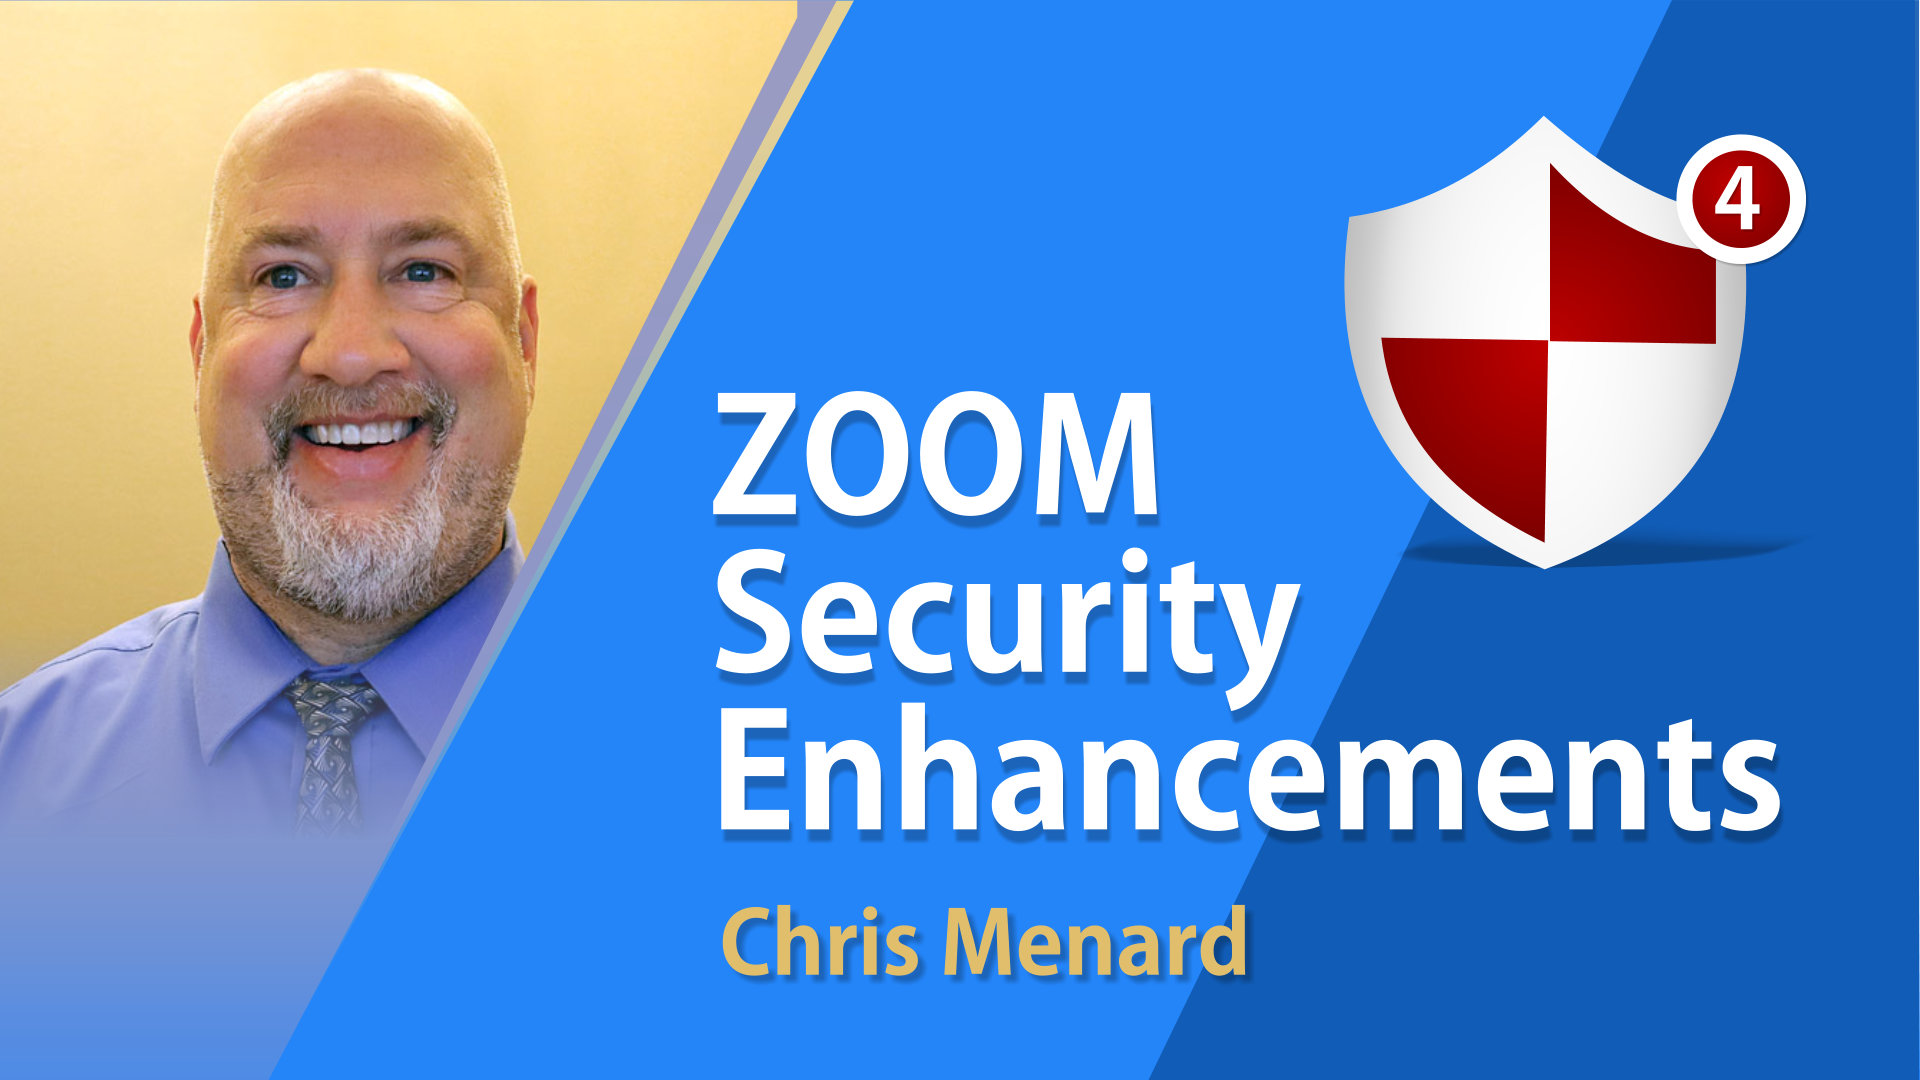 Zoom Security Enhancements for May 2020